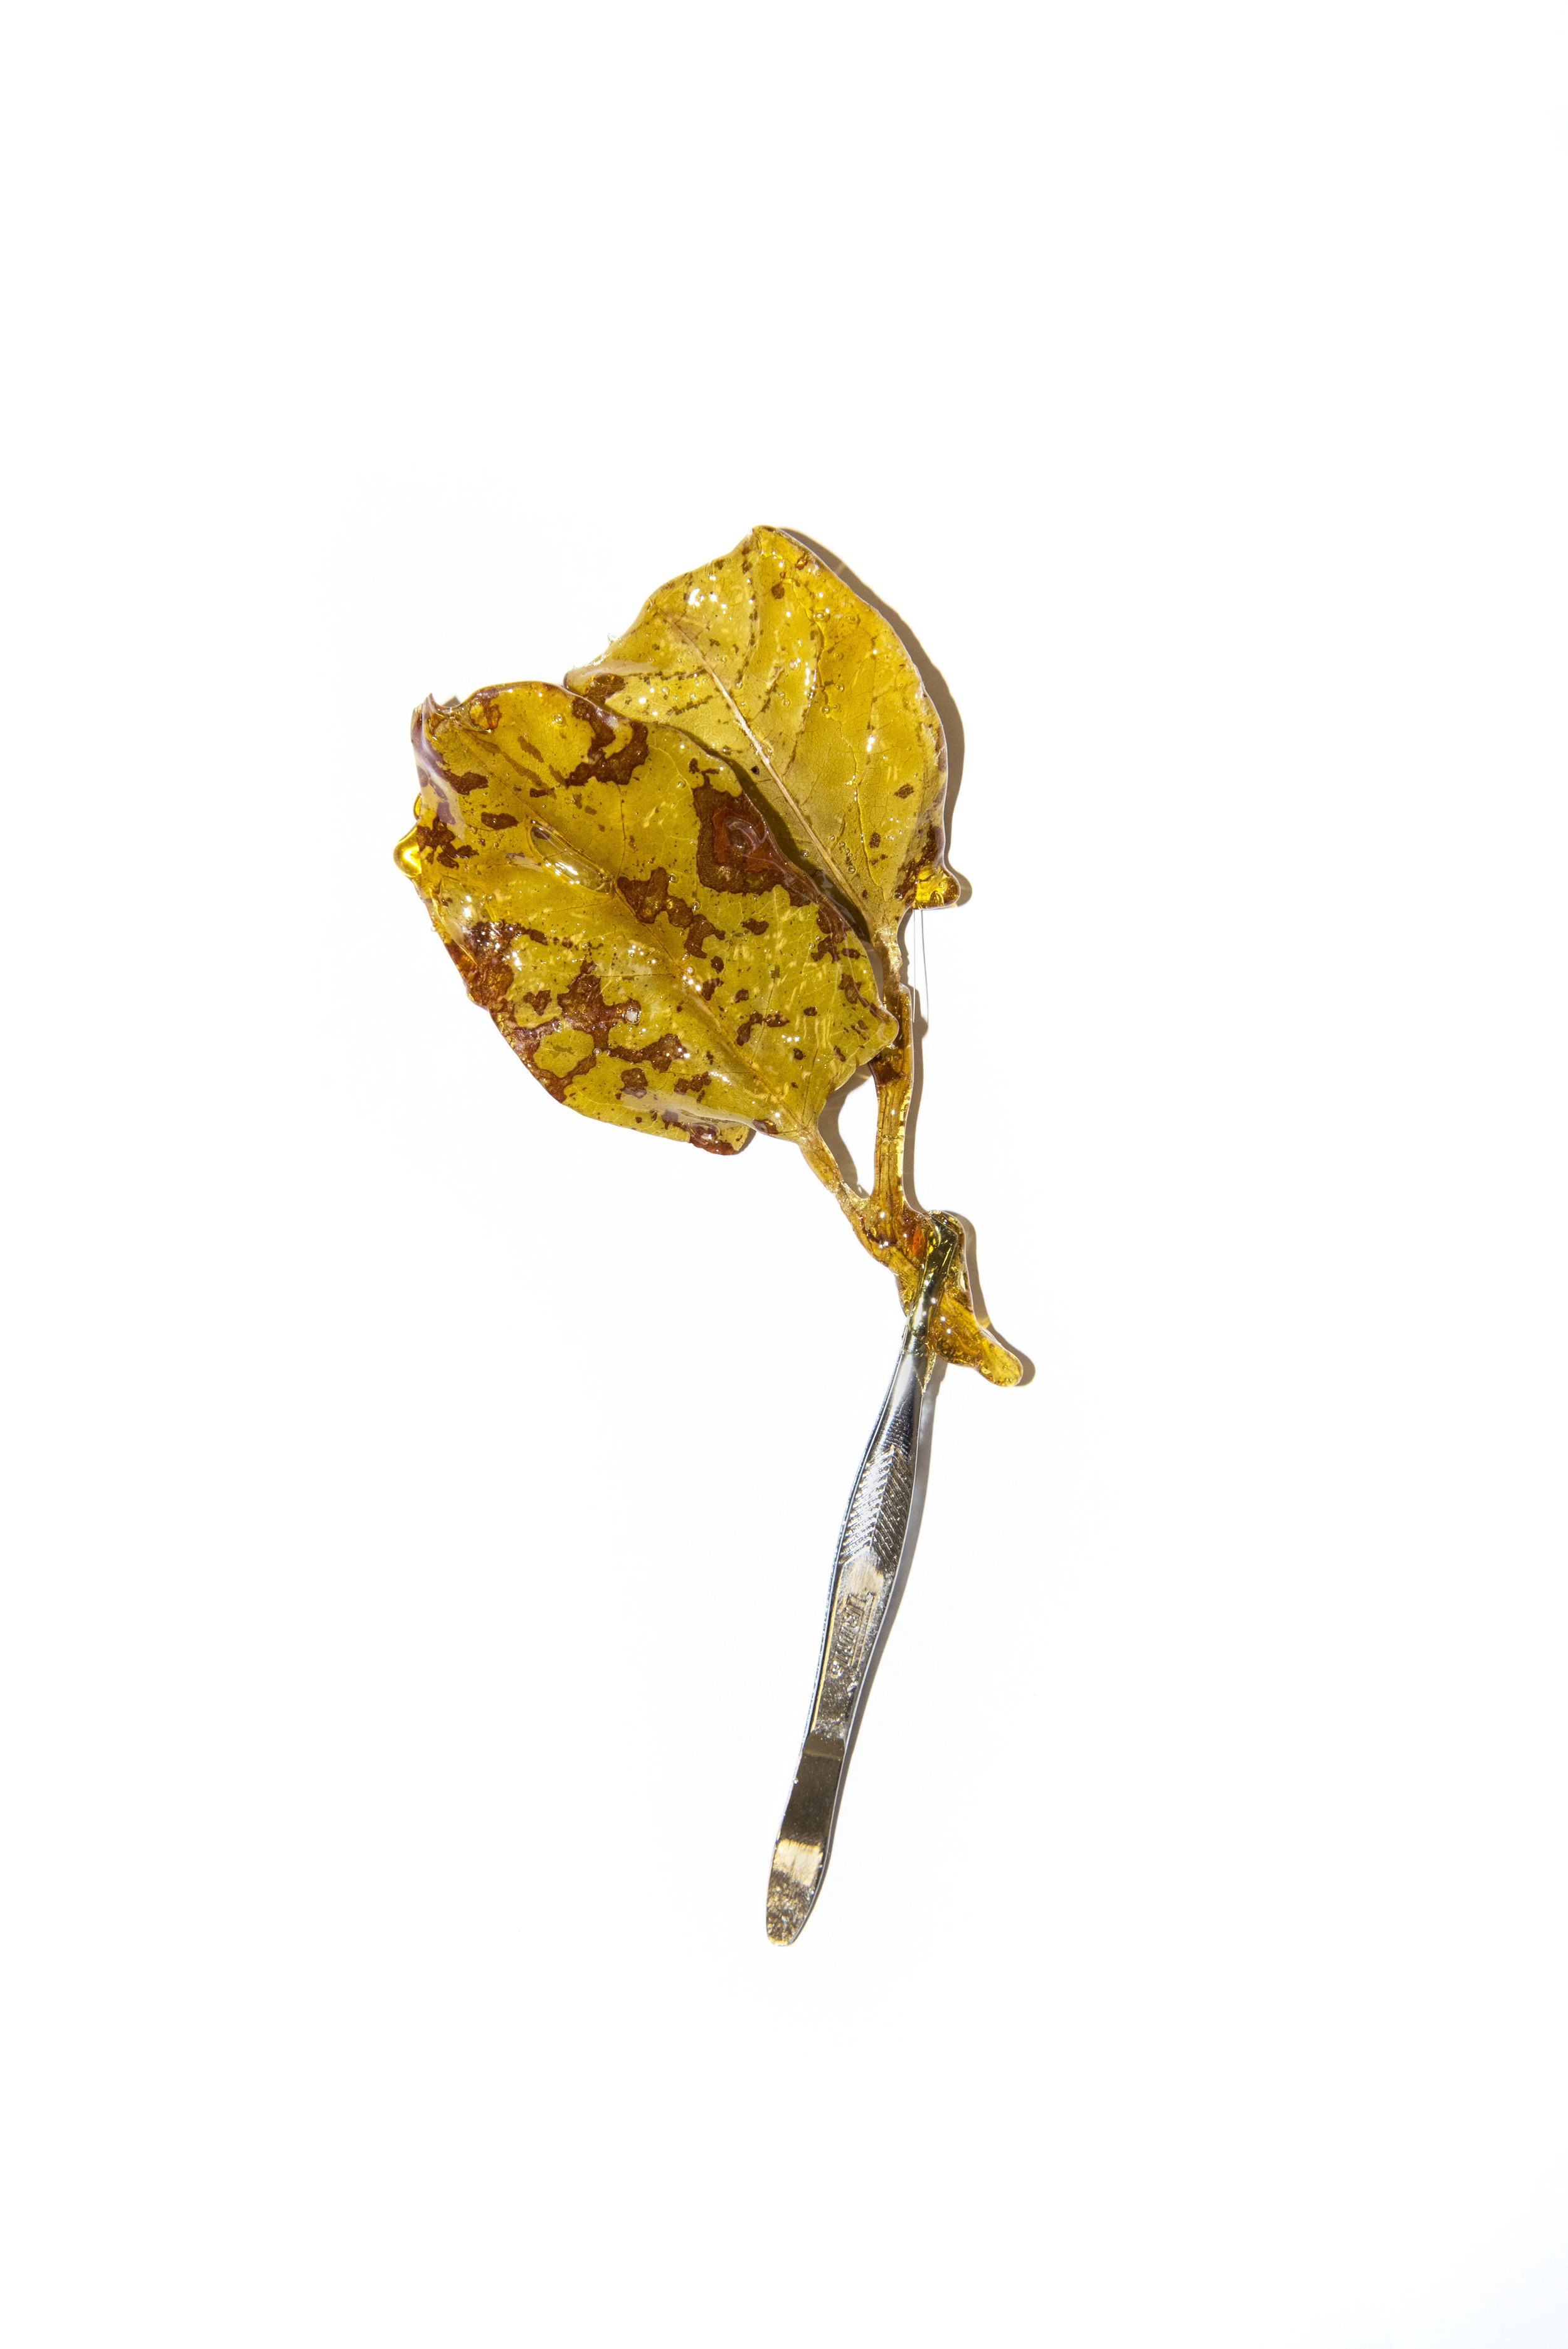 japanaese_knot_weed_in_amber.jpg